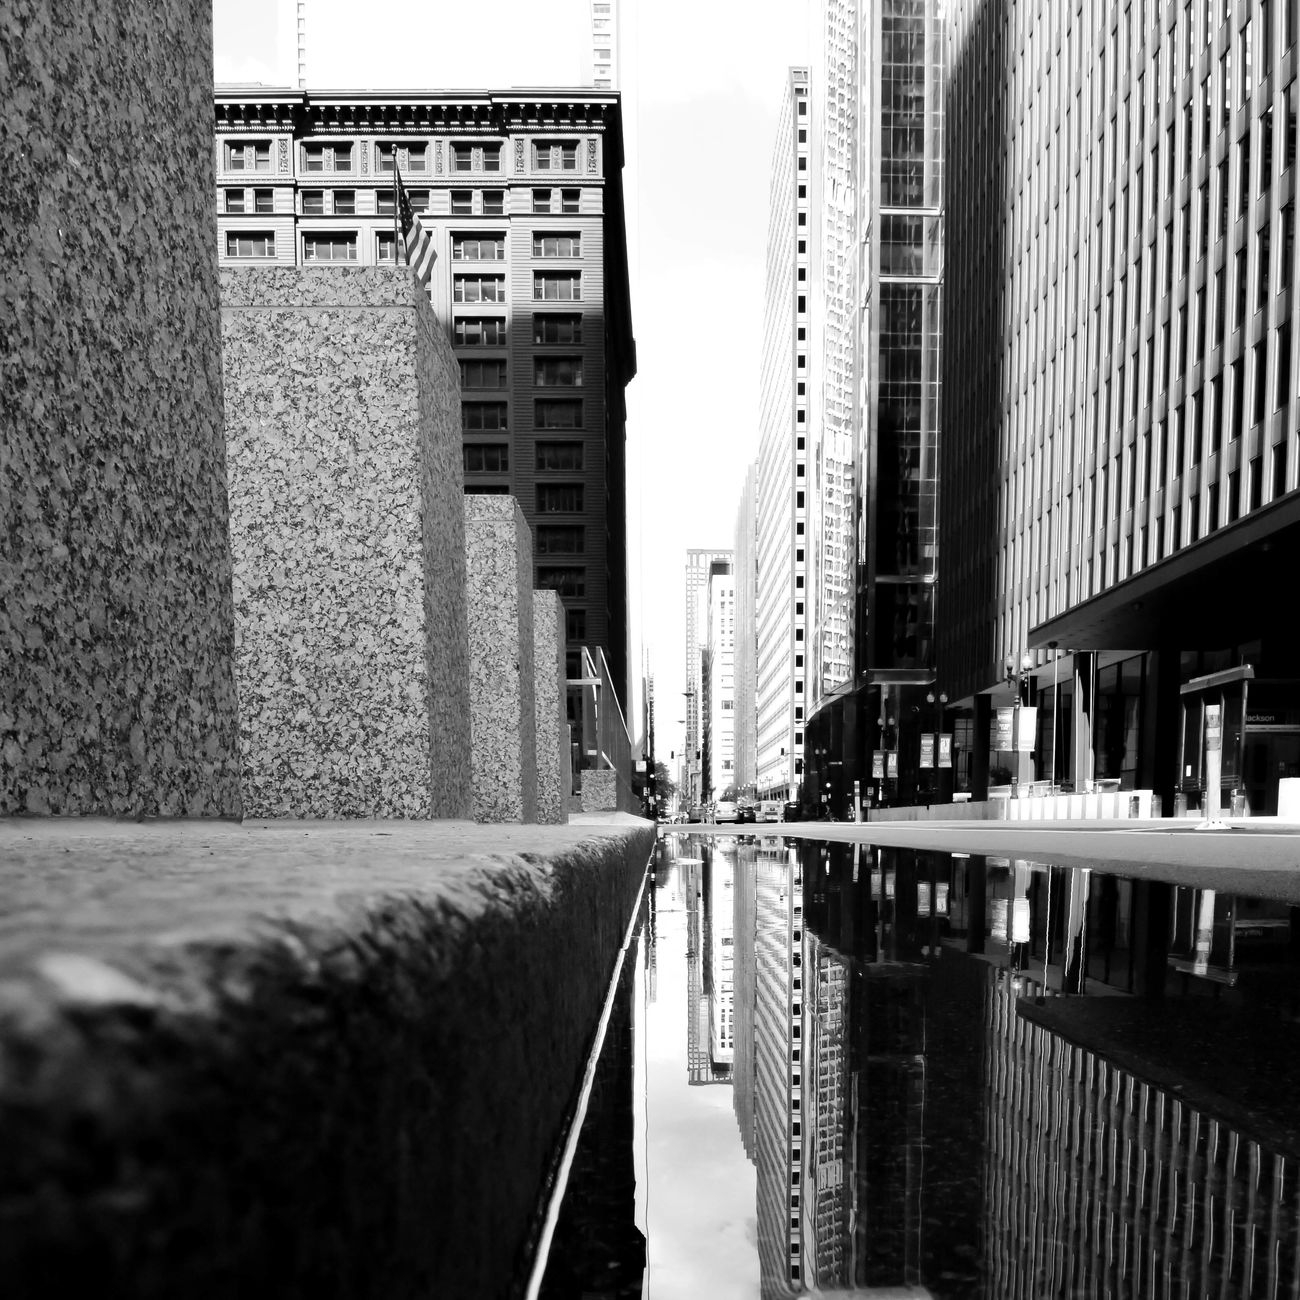 Urban Architecture Blackandwhite Blackandwhite Photography Bnw Building Exterior Built Structure City Day EyeEm EyeEm Best Shots Eyeemblack&white Nikon No People Outdoors Reflection Skyscraper Square Street Streetphotography Urban Urban Exploration Urbanphotography Vanishing Point Water